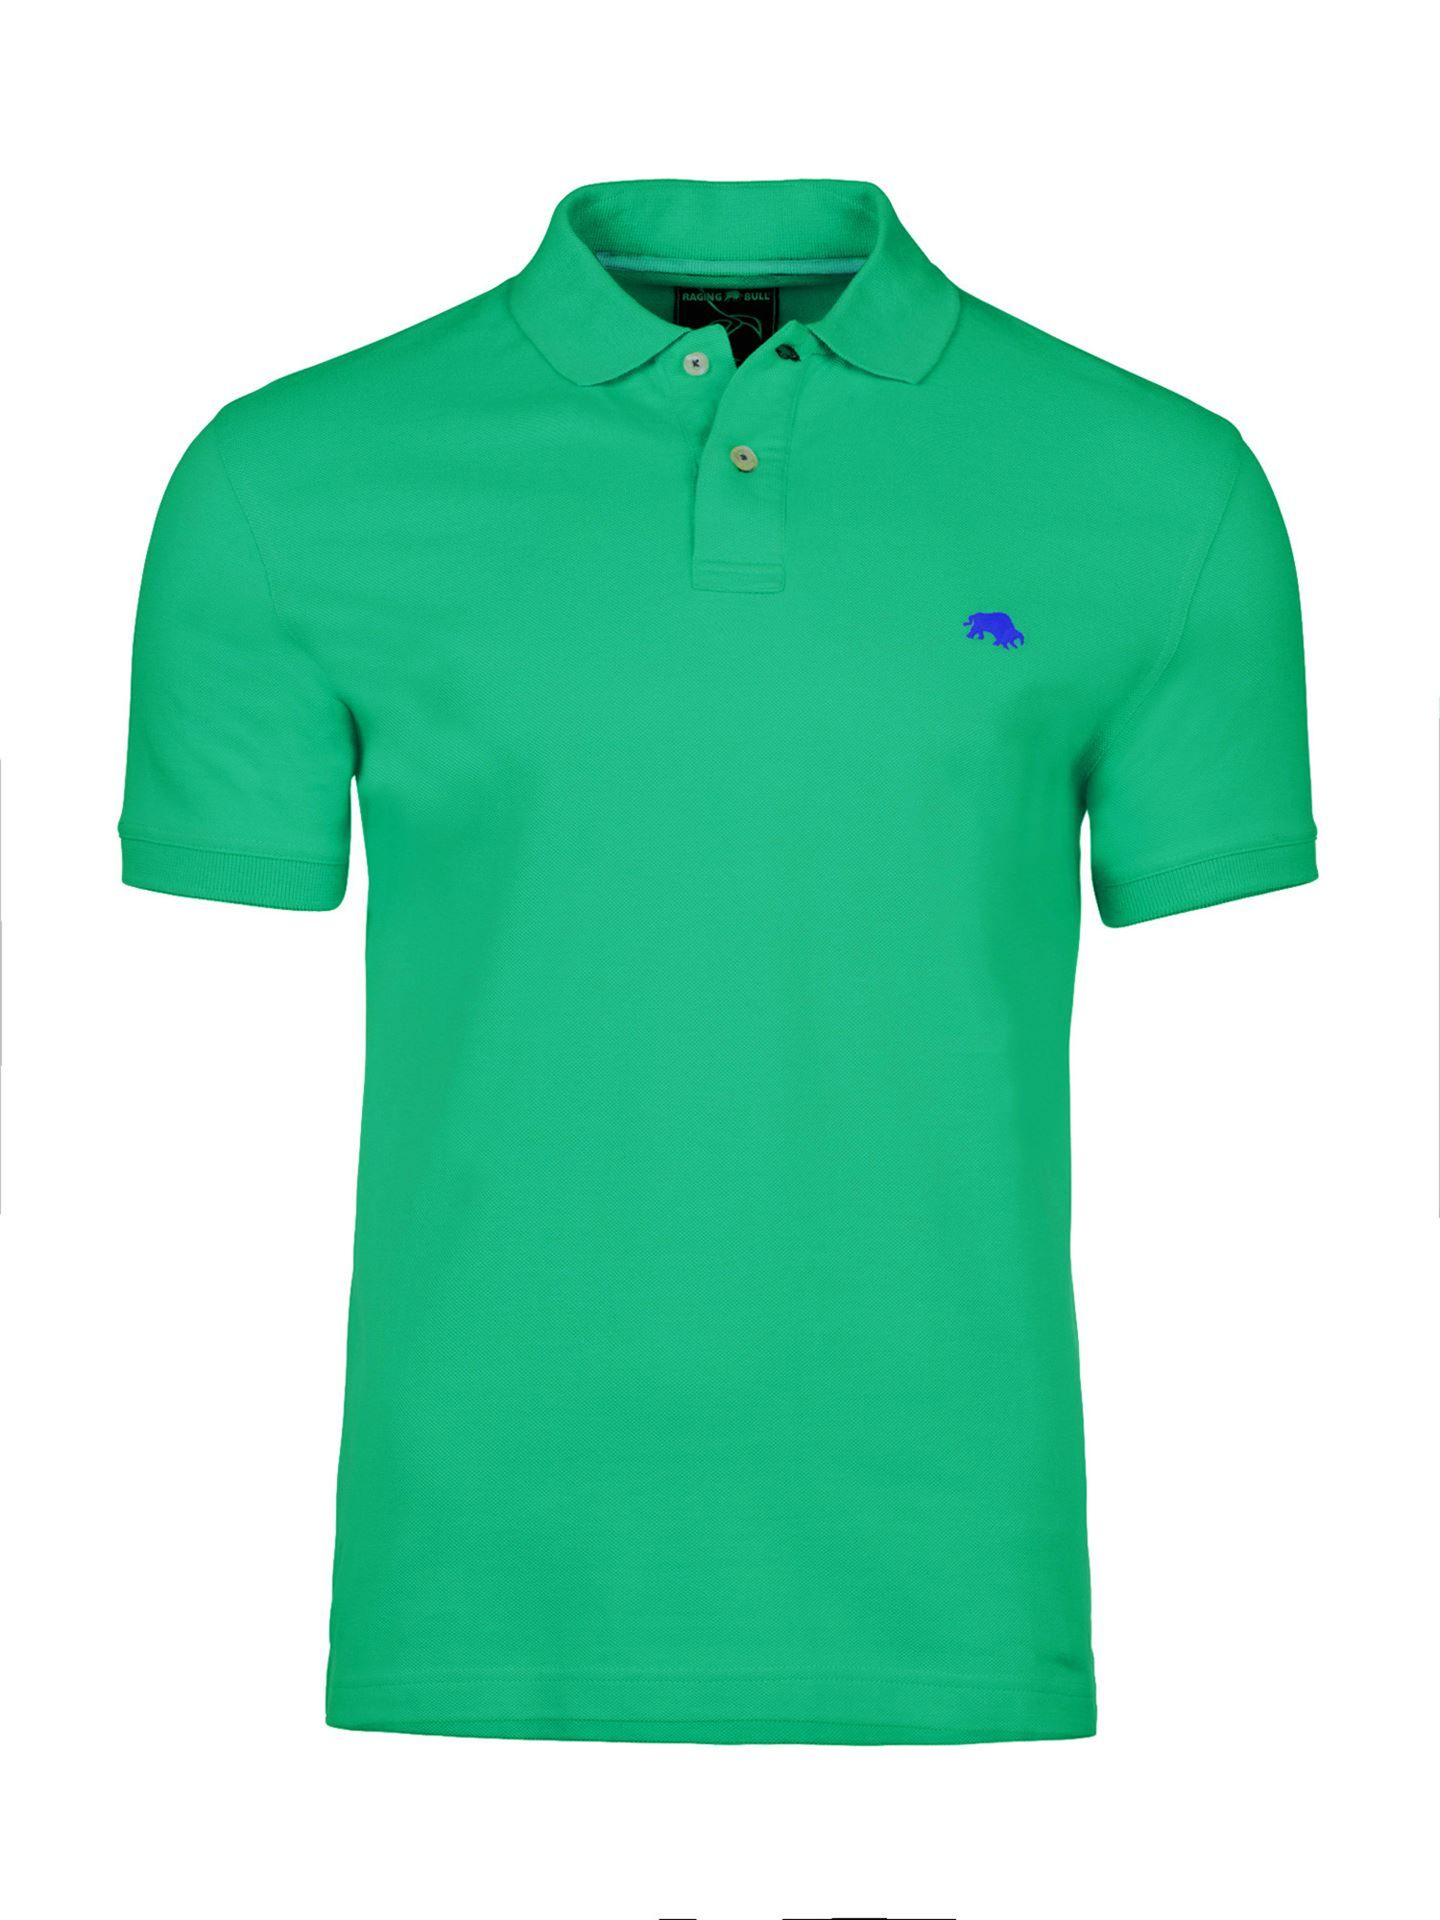 Men's Raging Bull Fly Fit Plain Polo, Green